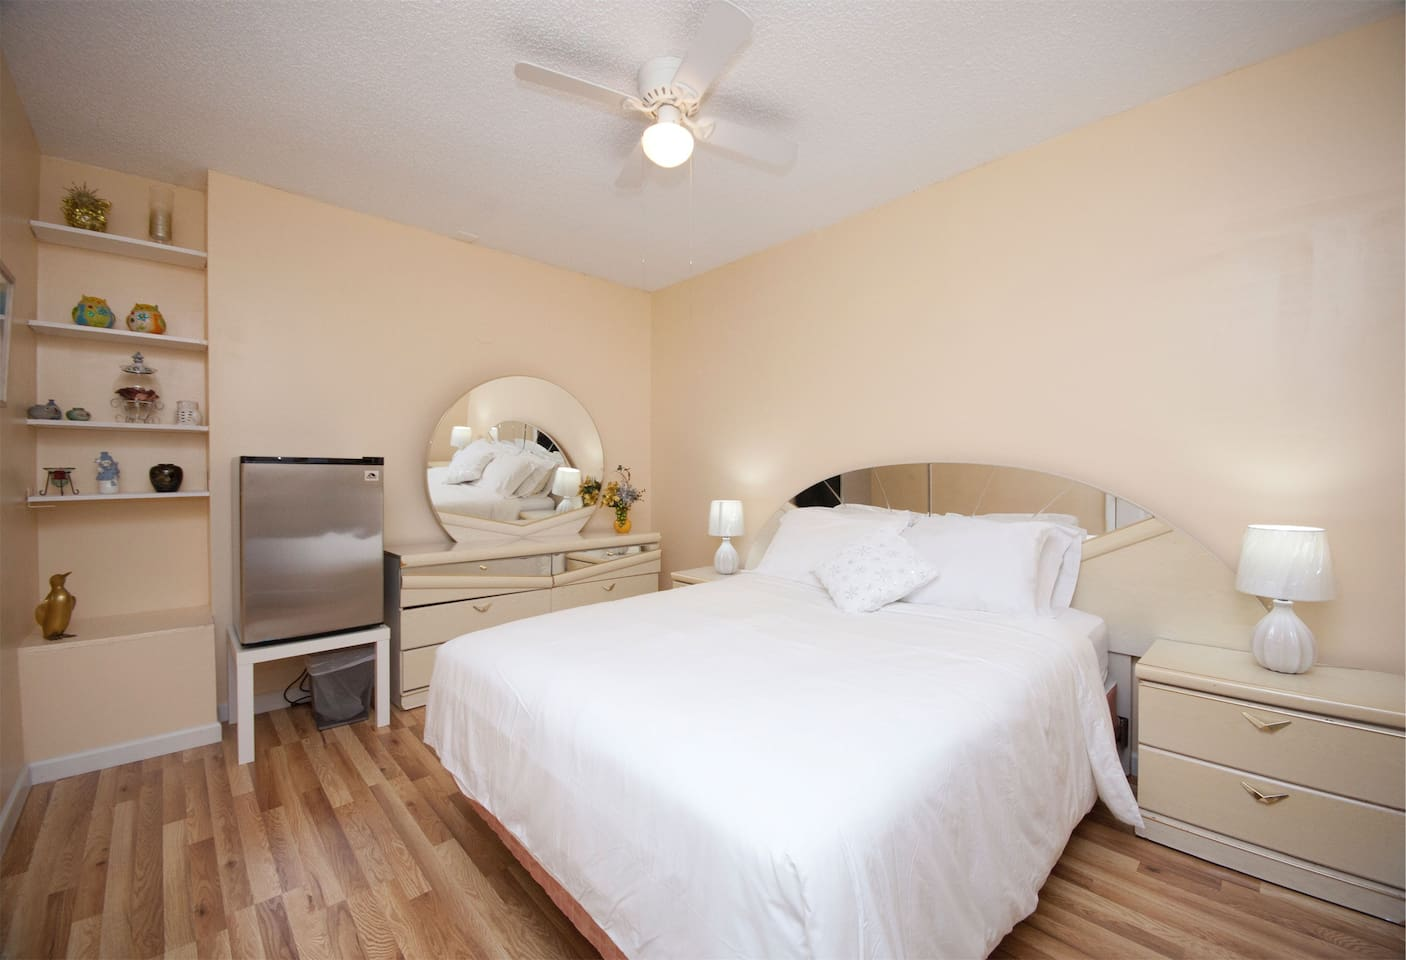 Freedom A - Queen size bedroom, with independent entrance, mirror dresser and bed, refrigerator etc...